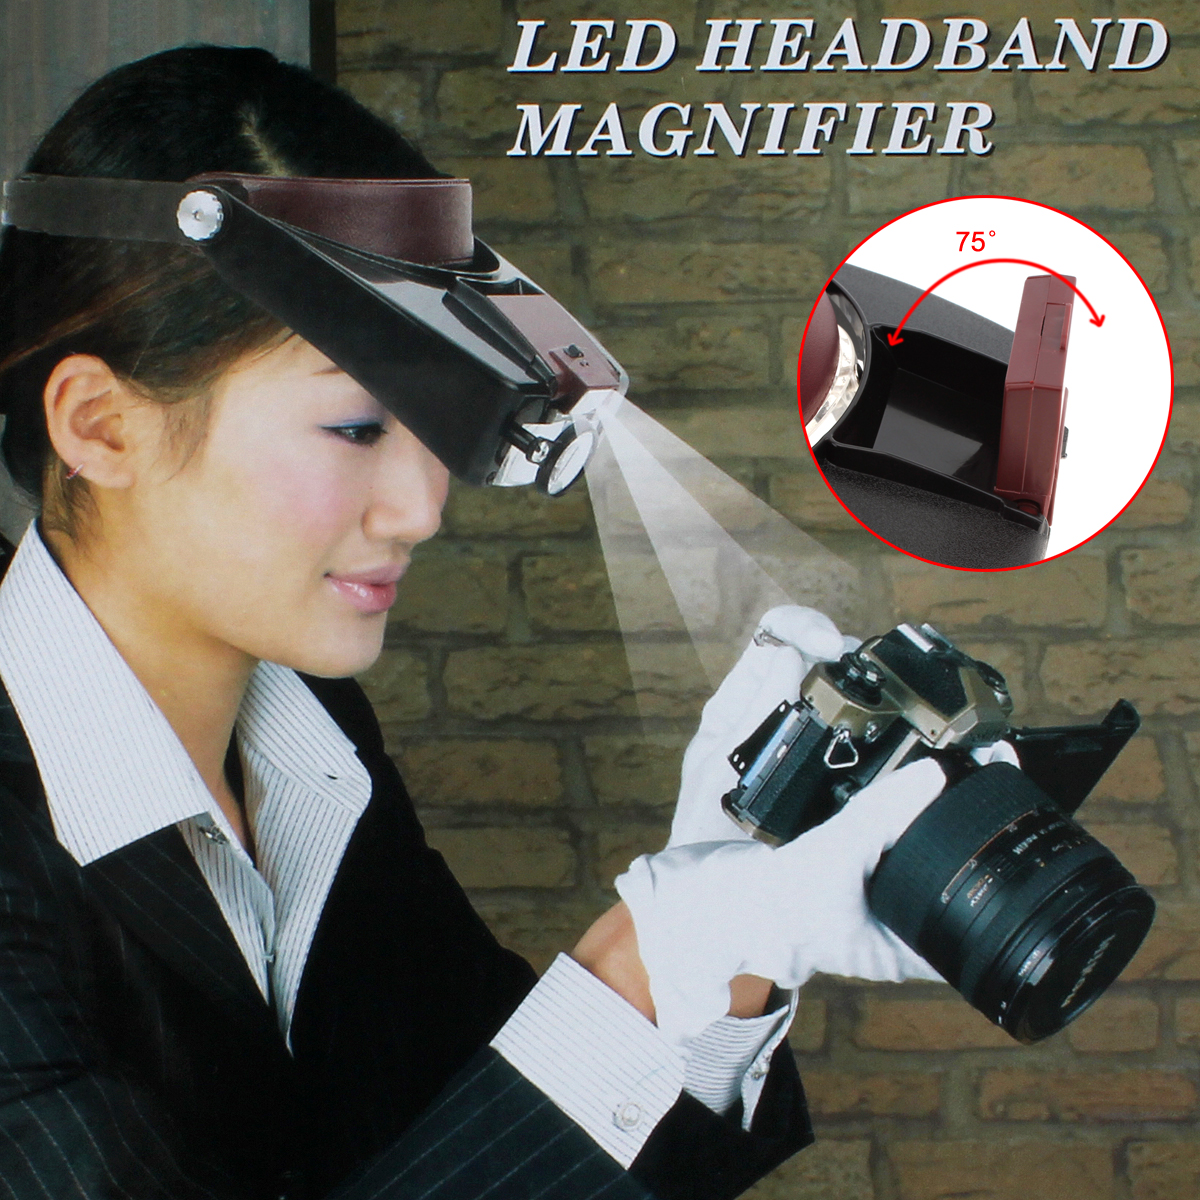 Headband 10X Magnifier Head Magnifying Glass Lens Loupe with LED Light for Handcraft / Repairing